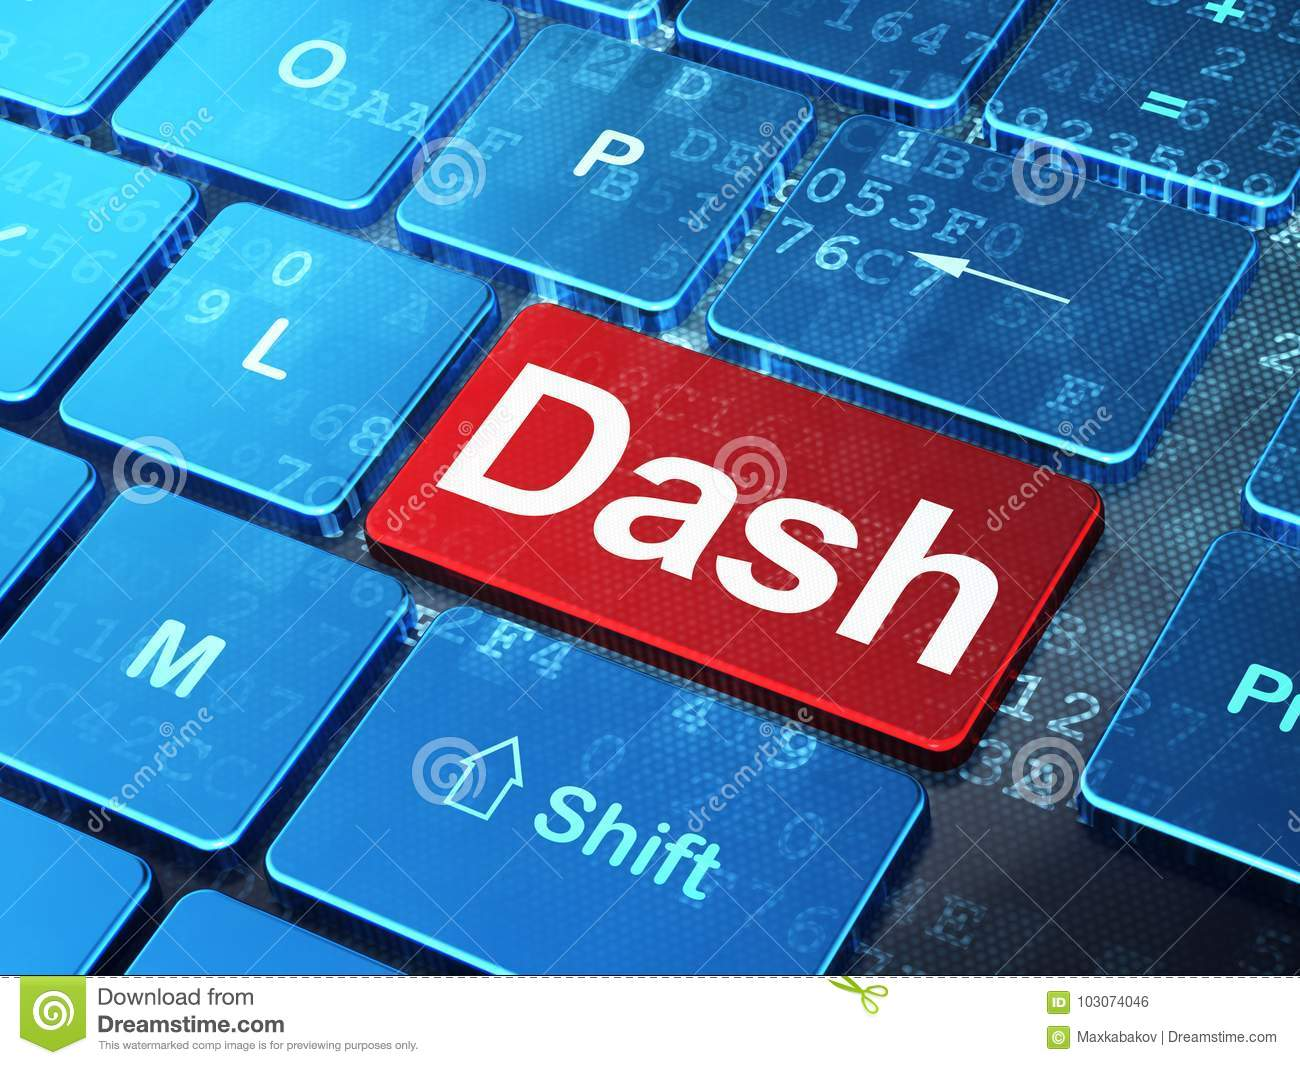 how to make a dash on keyboard